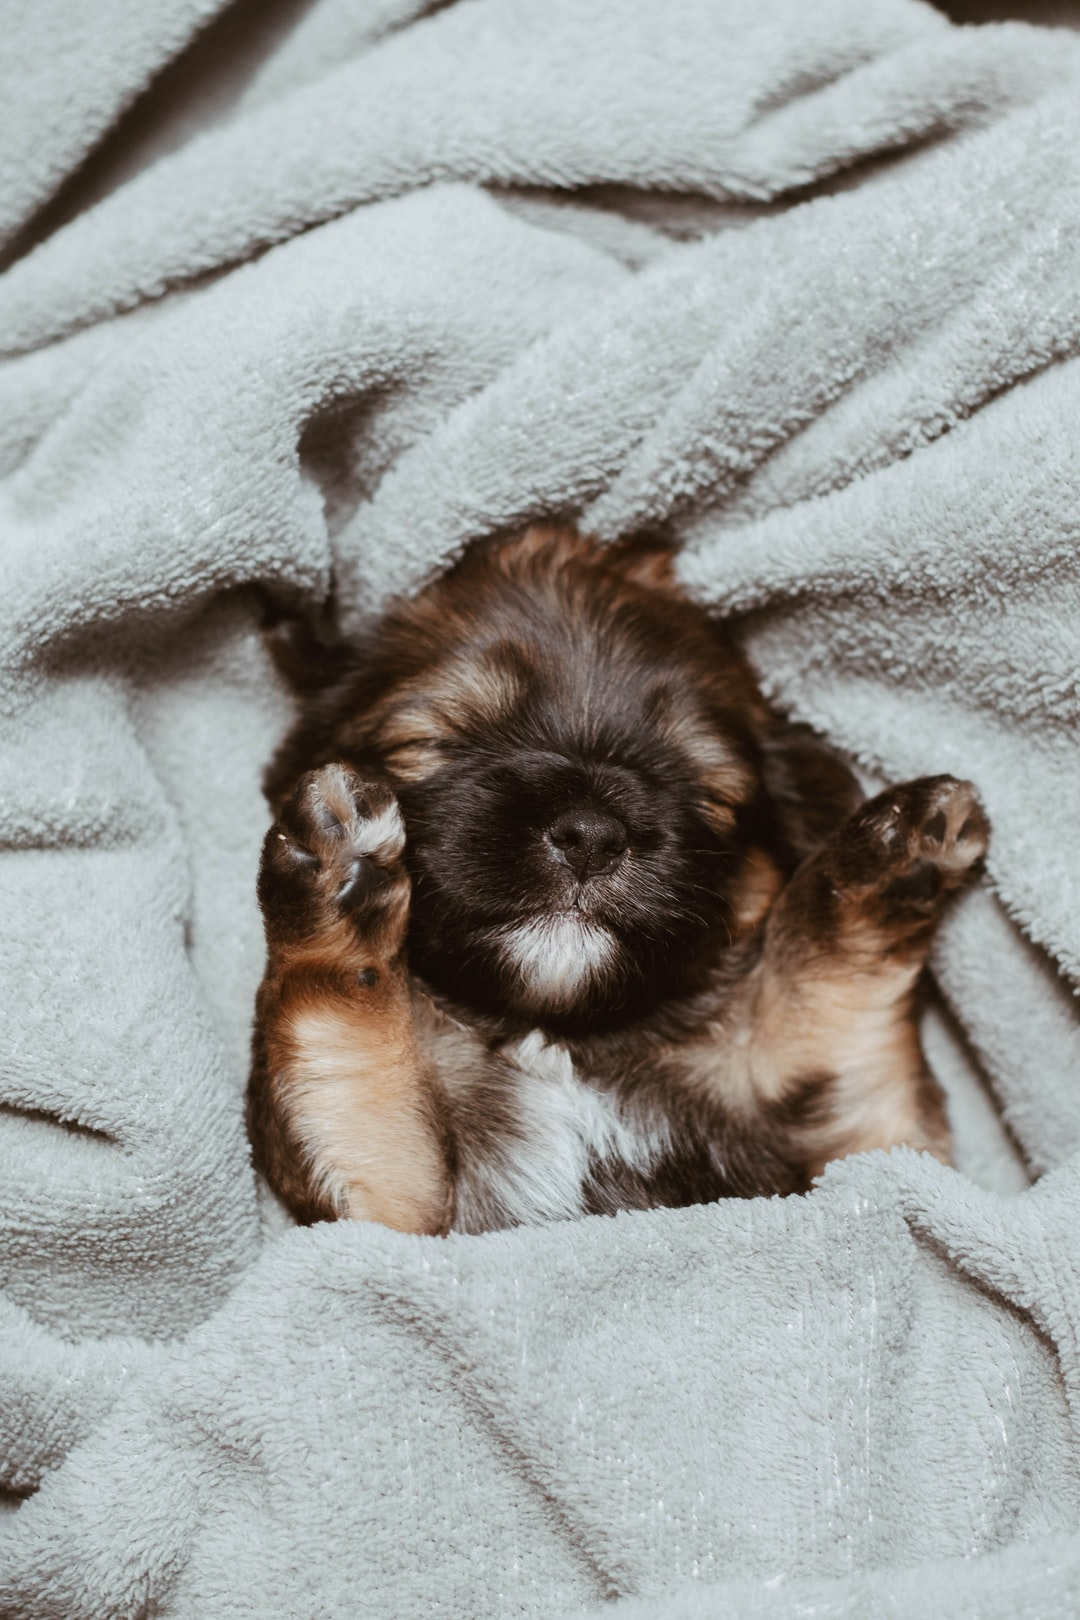 A puppy sleeping on a blanket. Full of love.